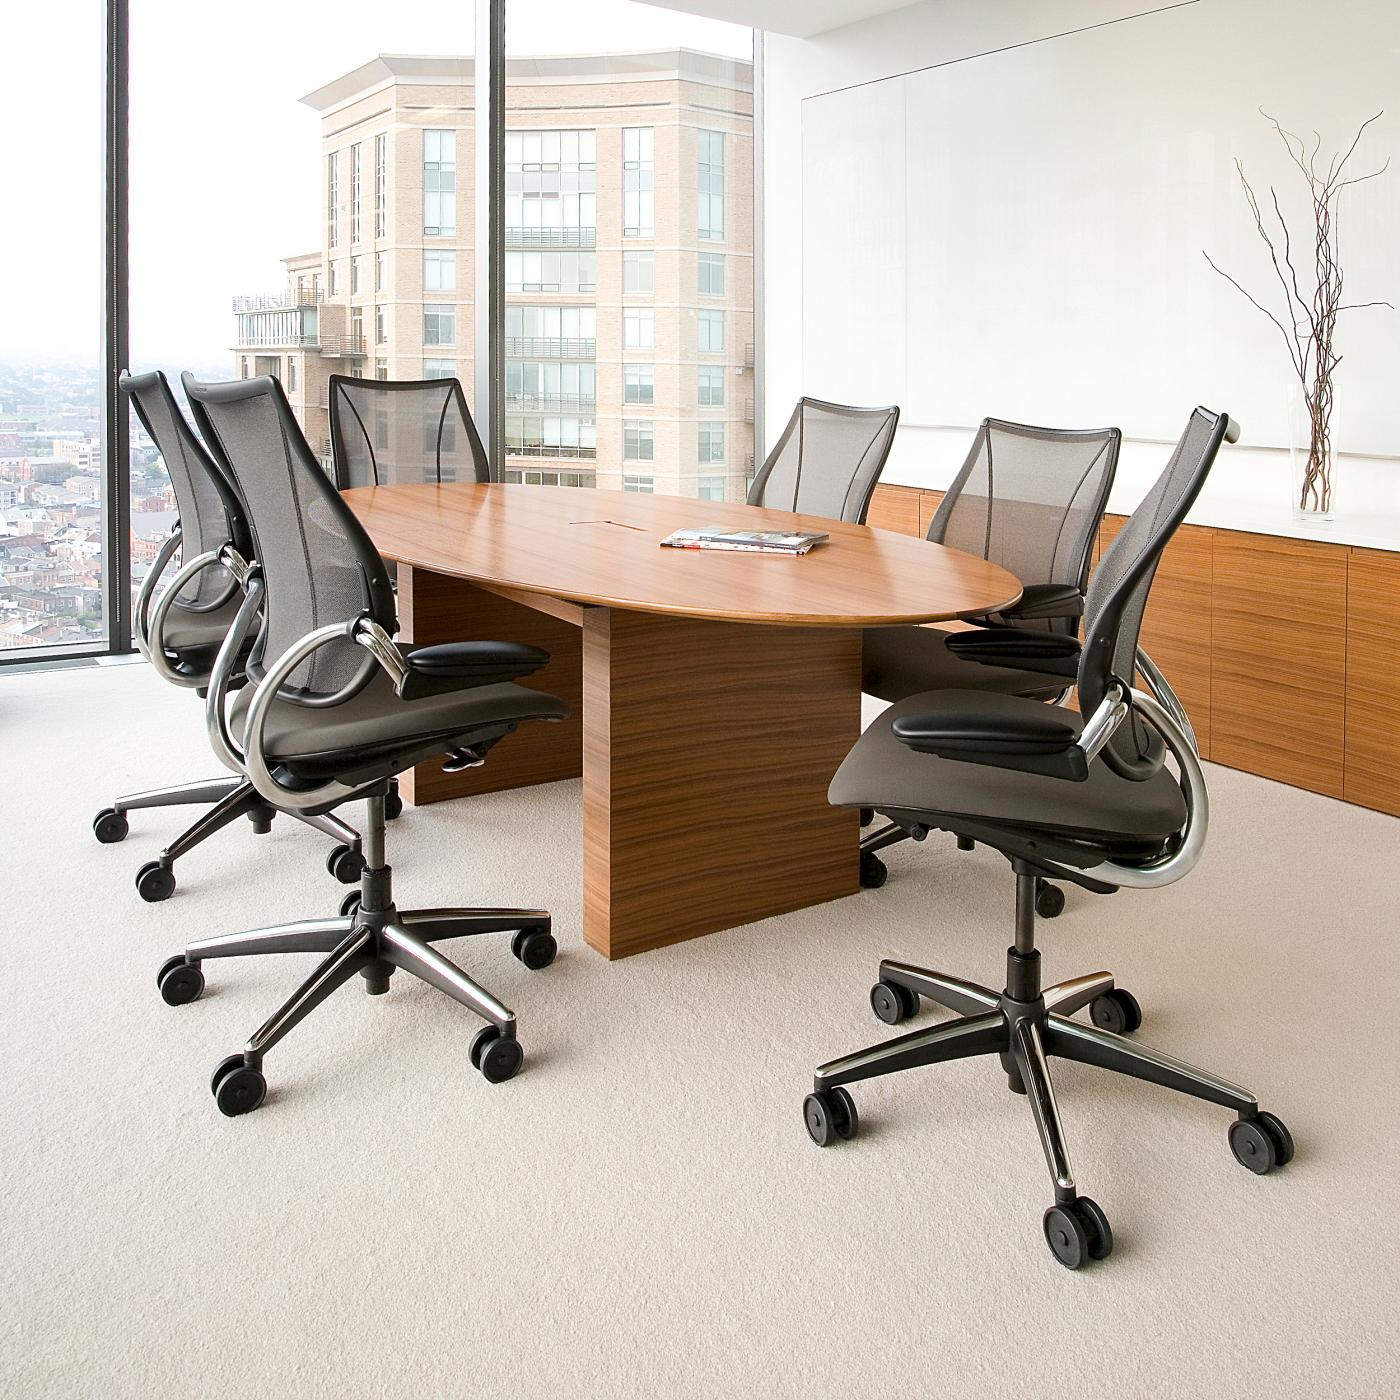 An elliptical conference table in eucalptus veneer matches the credenza with stone surface.